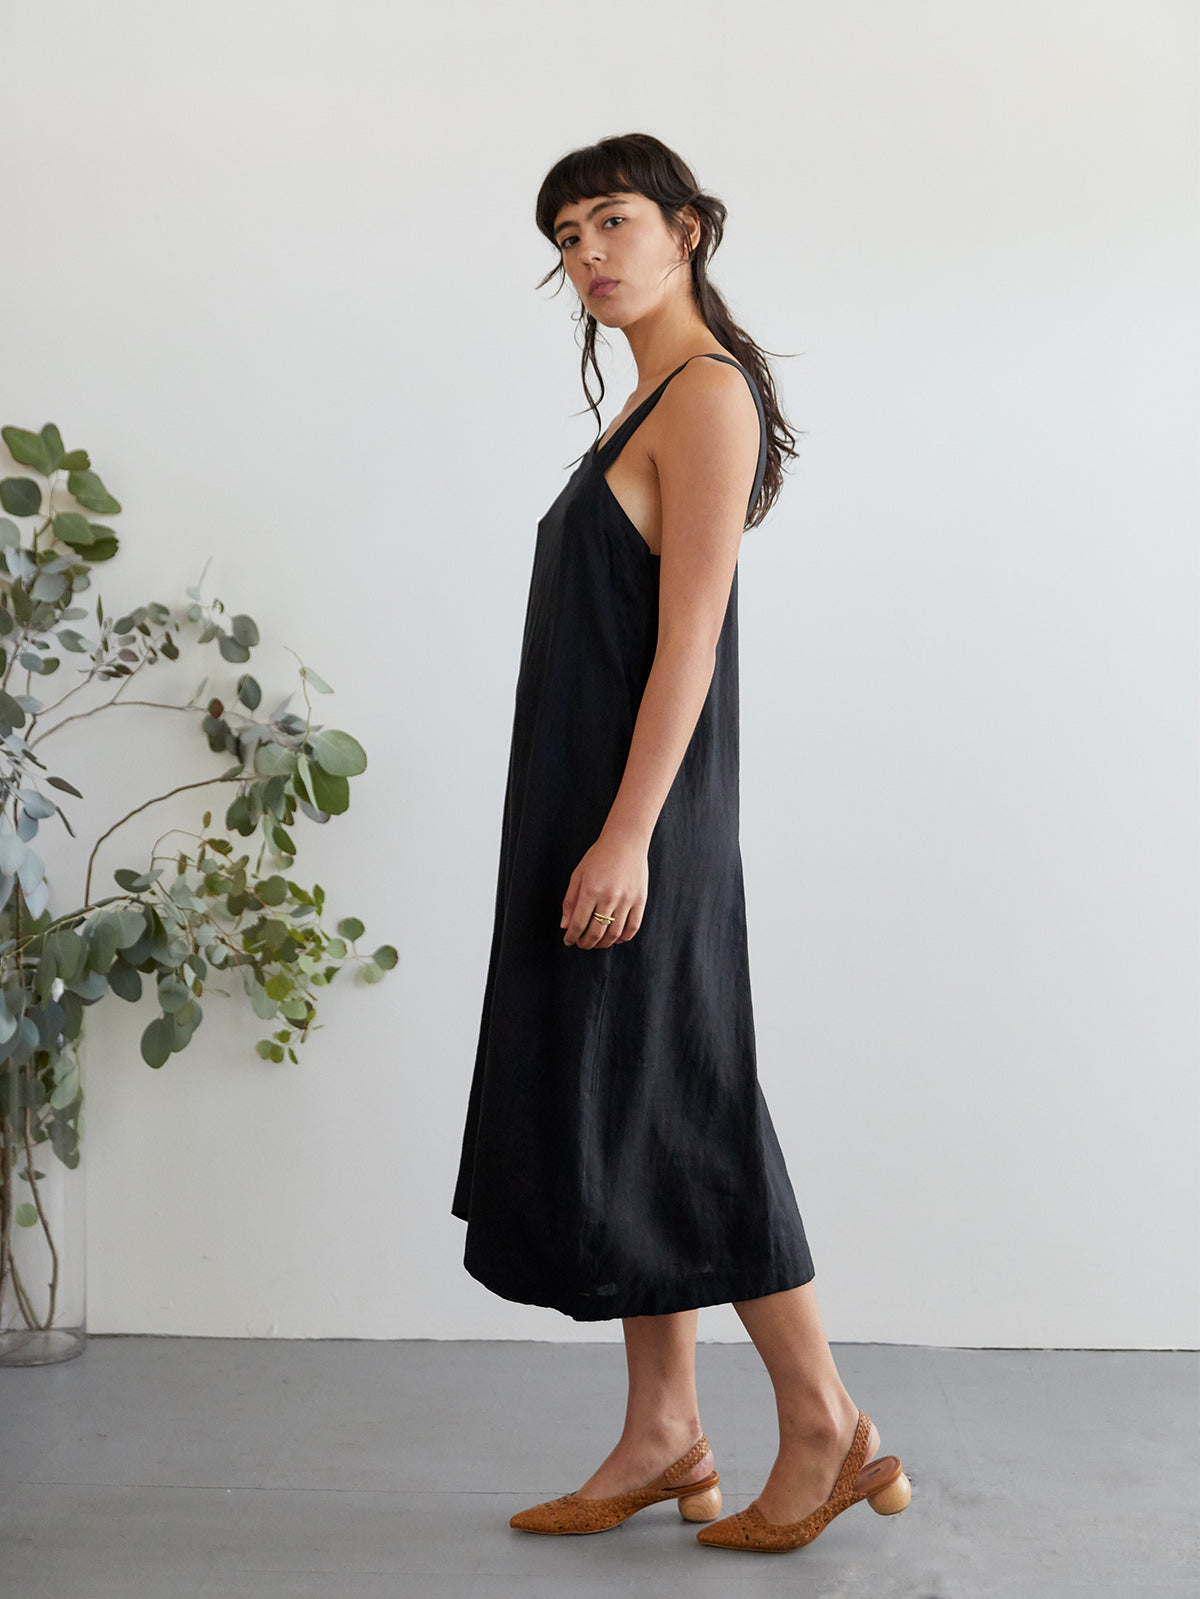 The Courtney Dress | BlackDresses - sugarcandymtn.com